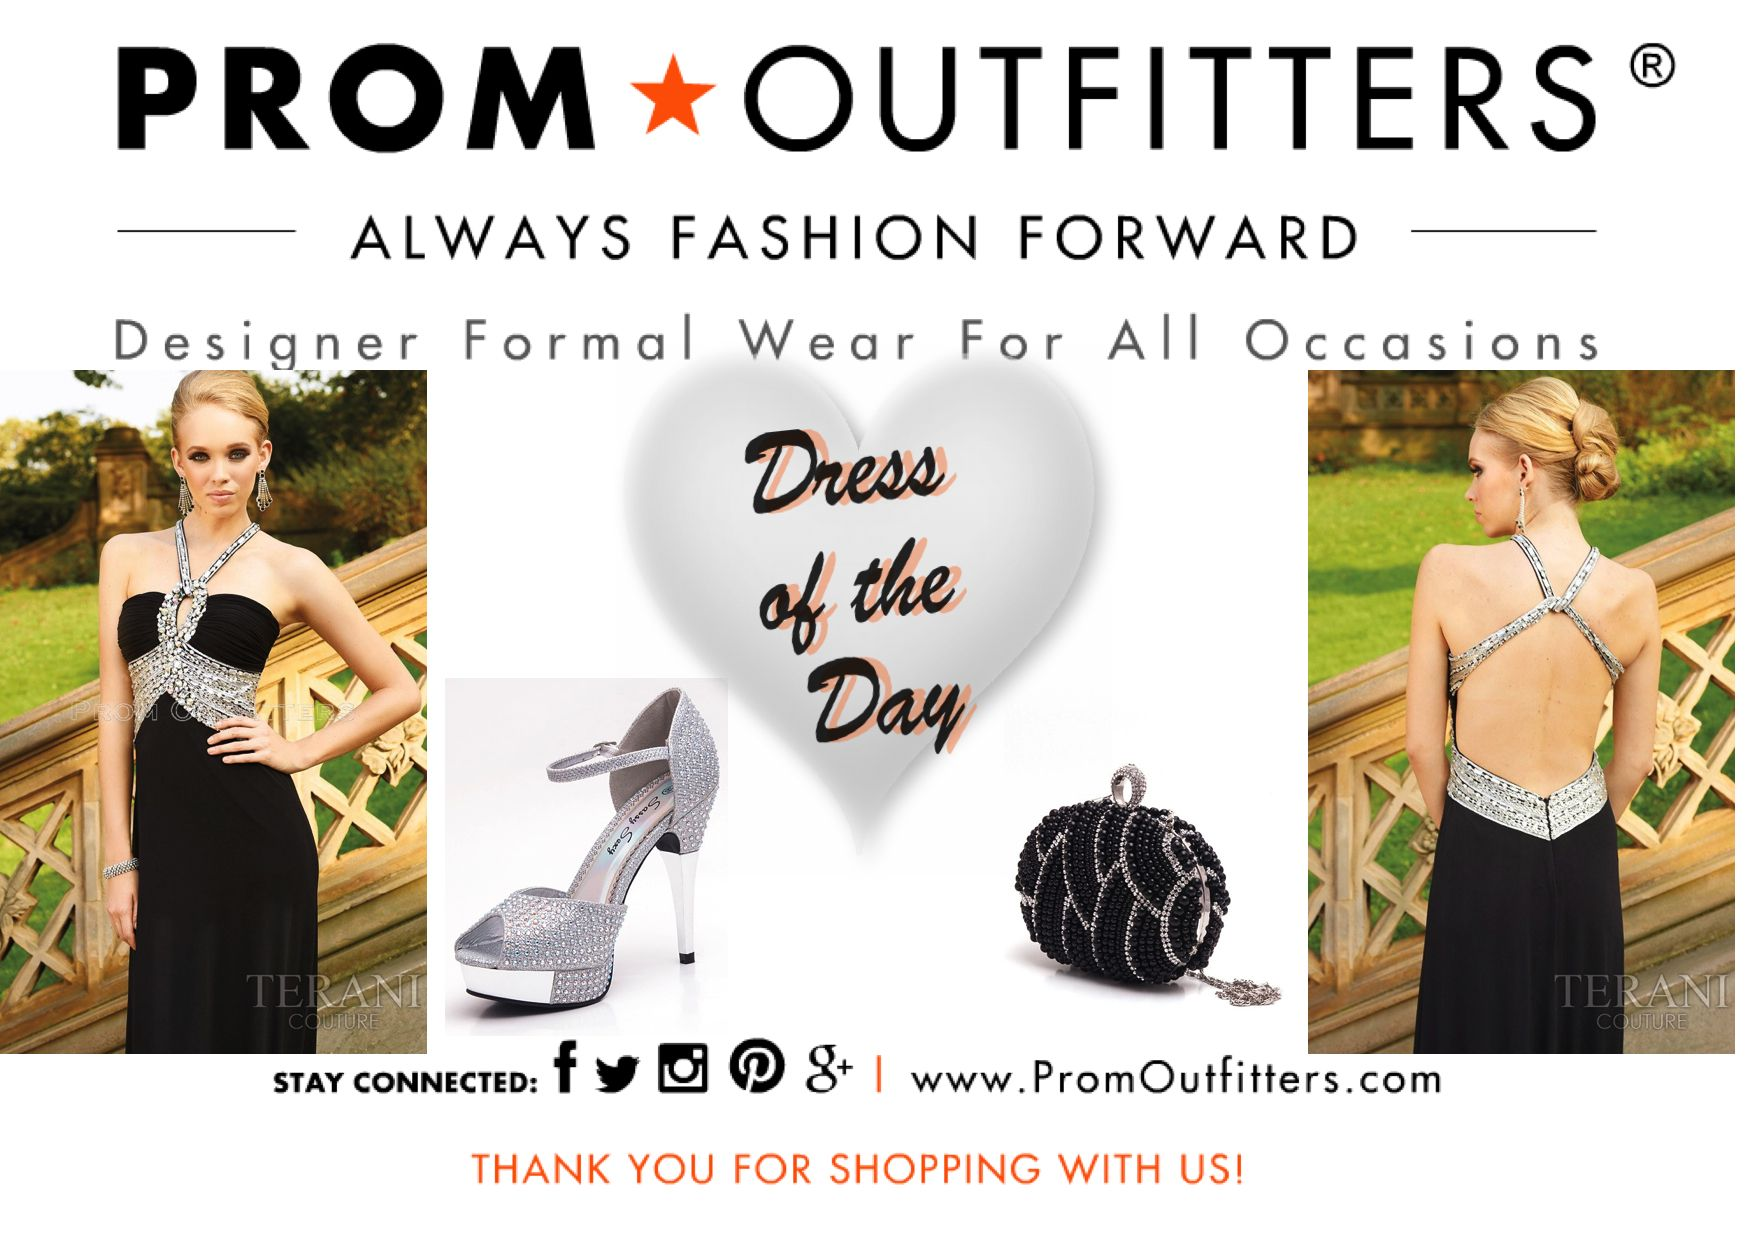 Dress of the Day! - Prom Outfitters  Style: Terani $378.00 http://www.promoutfitters.com/terani-jp611 Shoes: First Sight Stony  $59.99 http://www.promoutfitters.com/first-sight-stony Bag: City One 40006 Black $65.00 http://www.promoutfitters.com/city-one-40006-black